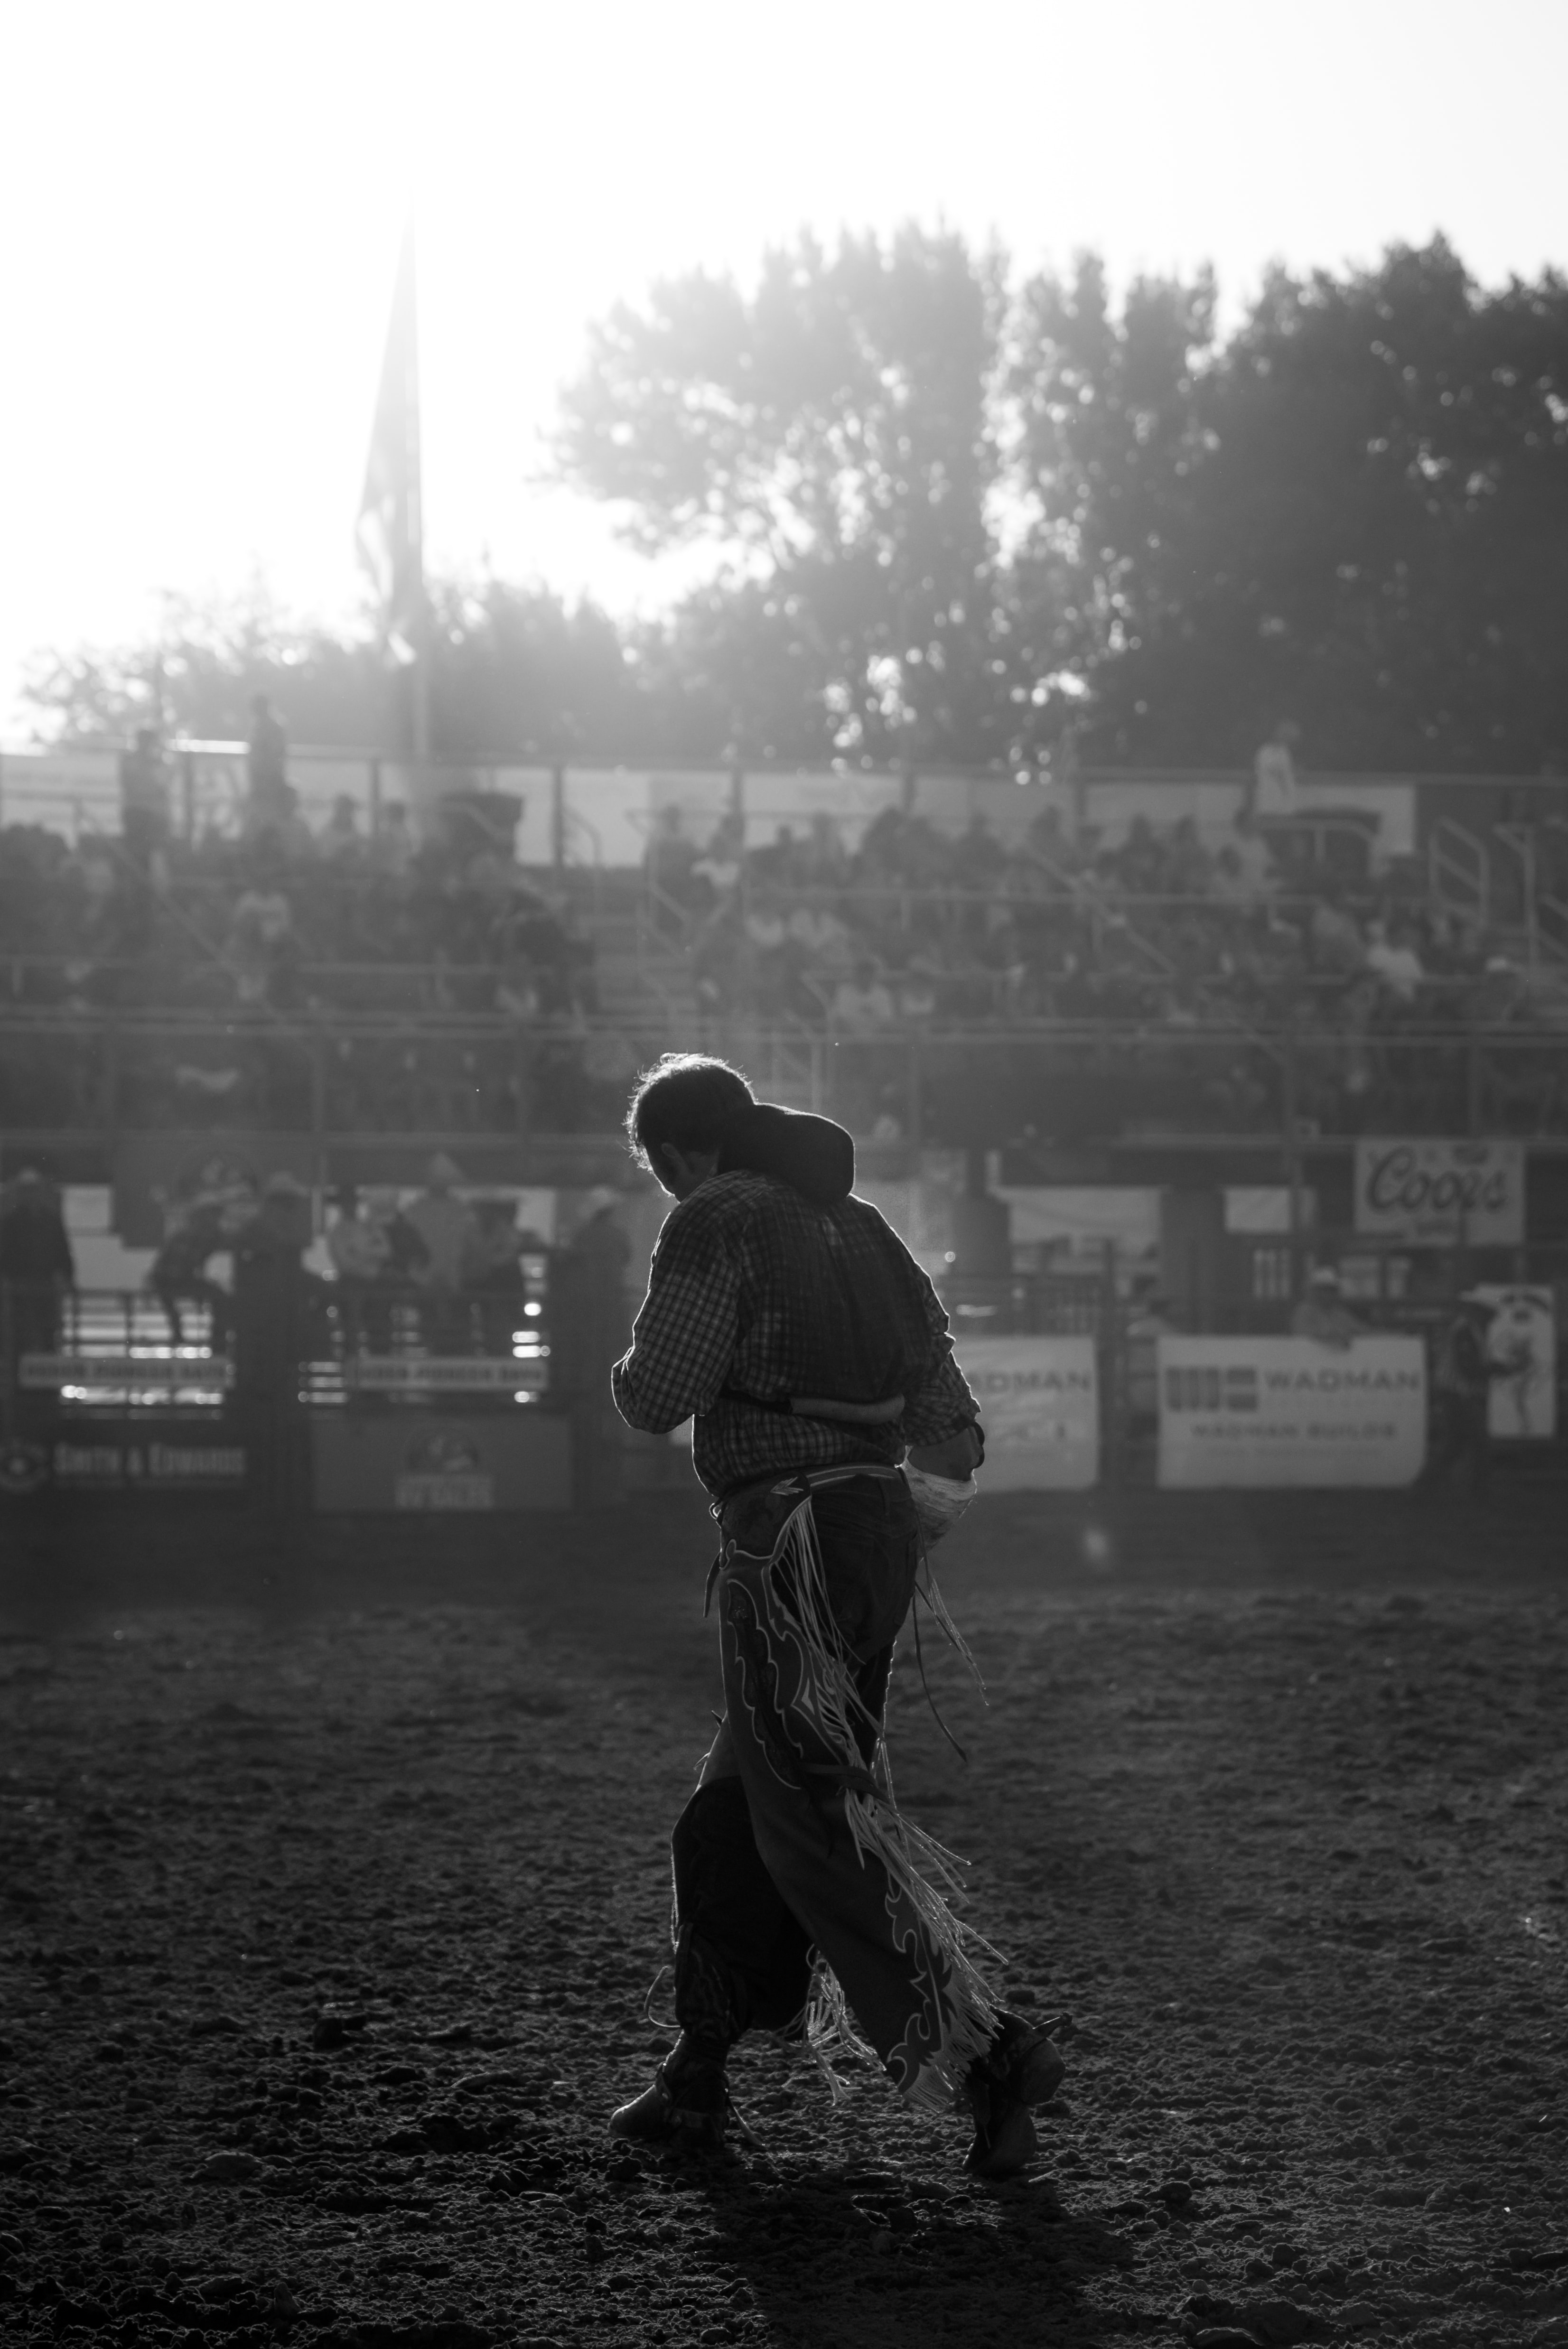 grayscale photo of man wearing cowboy chaps